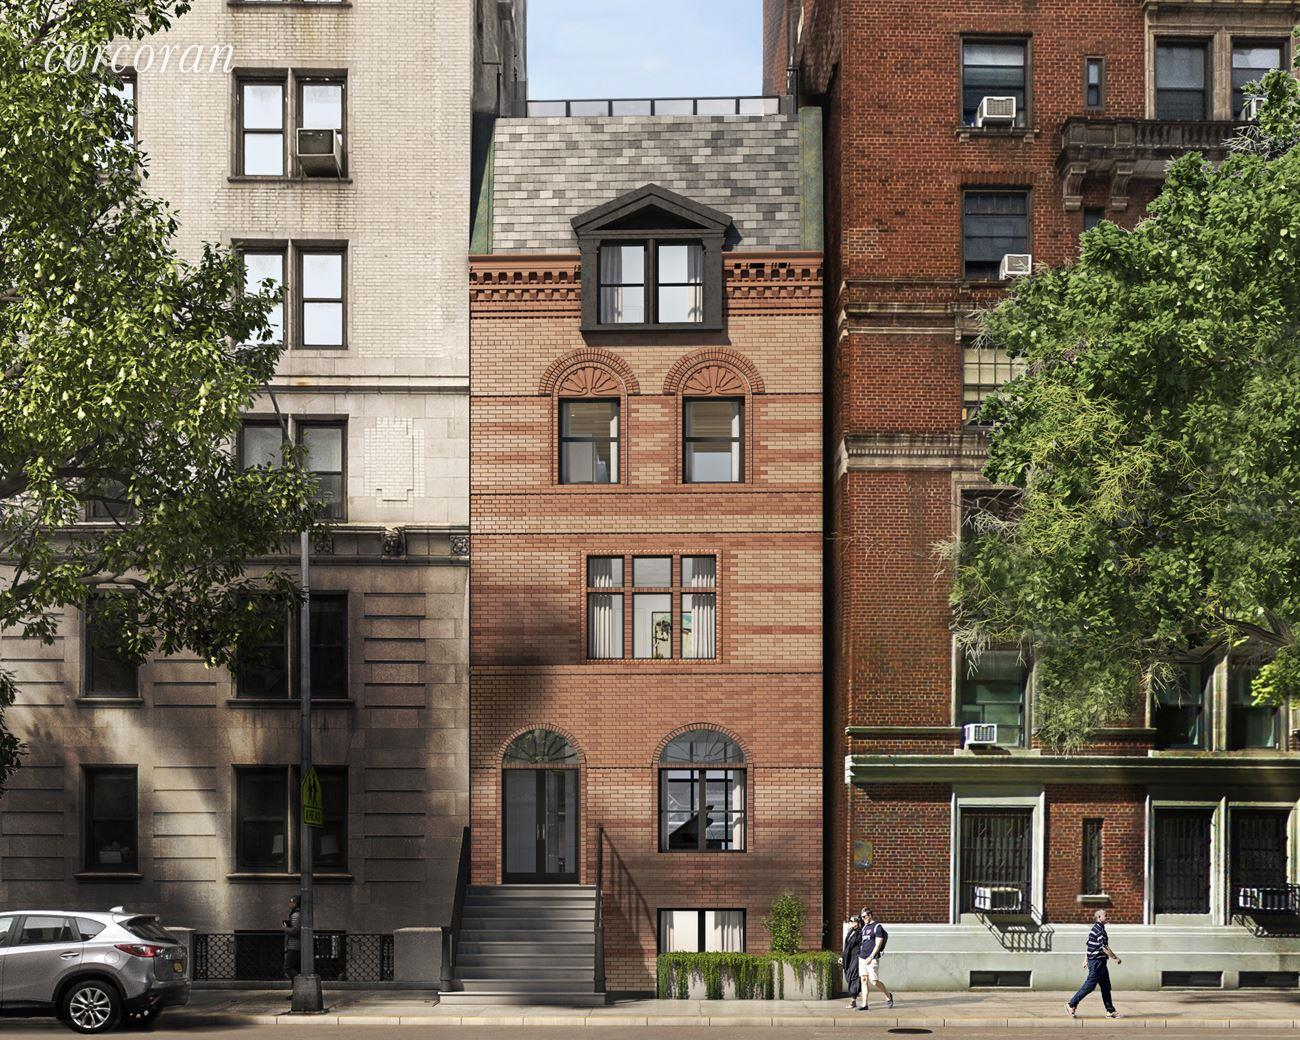 471 WEST END AVENUE 471 West End Ave New York, New York,10024 United States